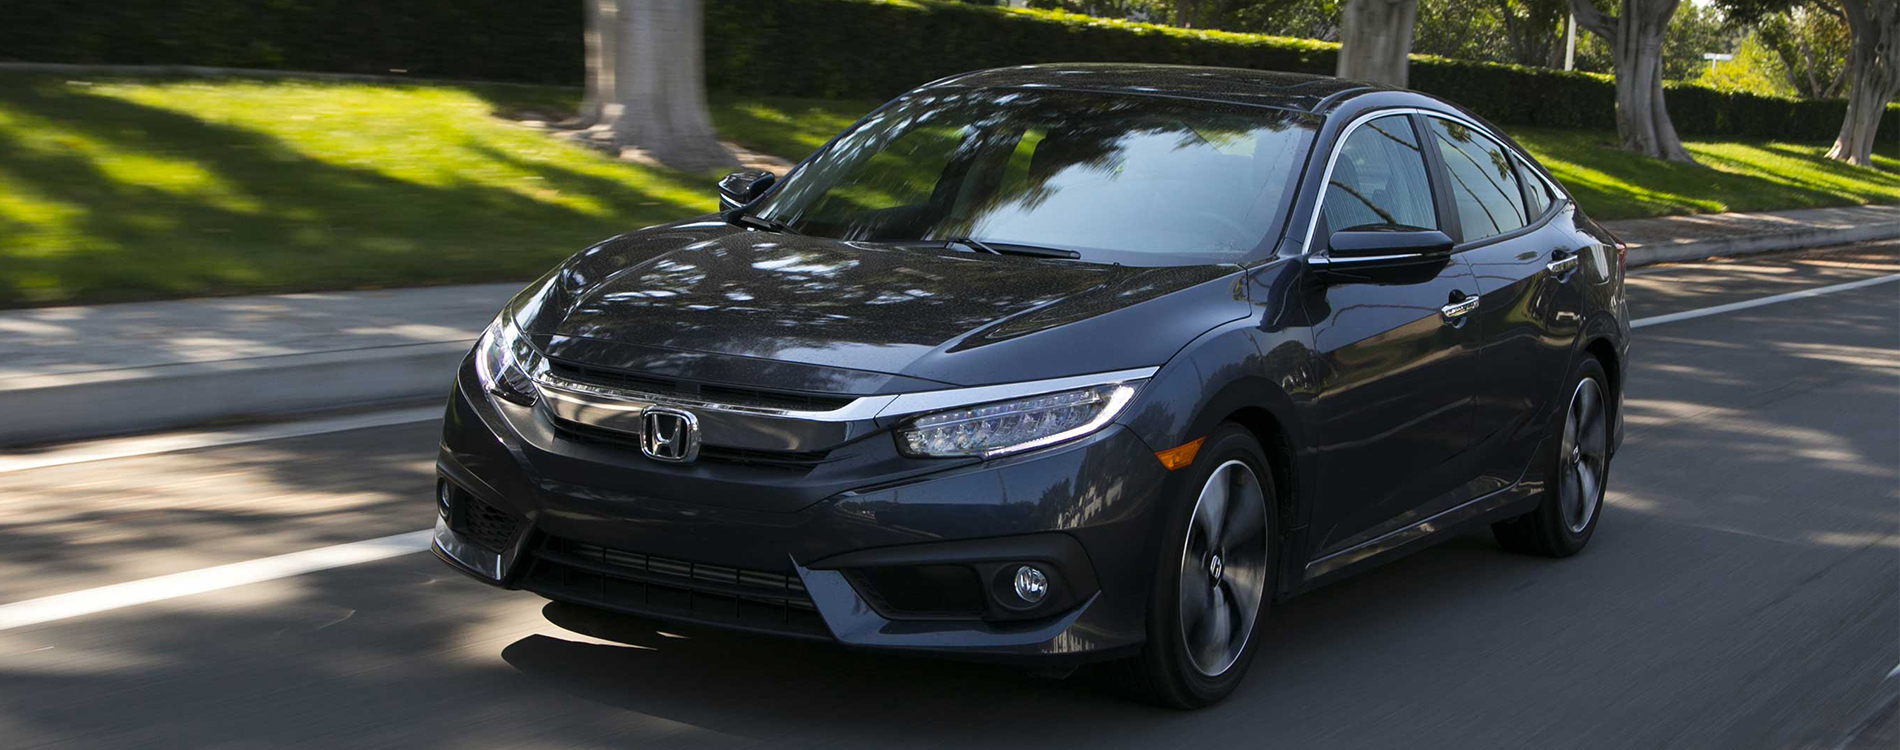 KELLEY BLUE BOOK ANNOUNCES WINNERS OF 2017 BEST BUY AWARDS; HONDA ...